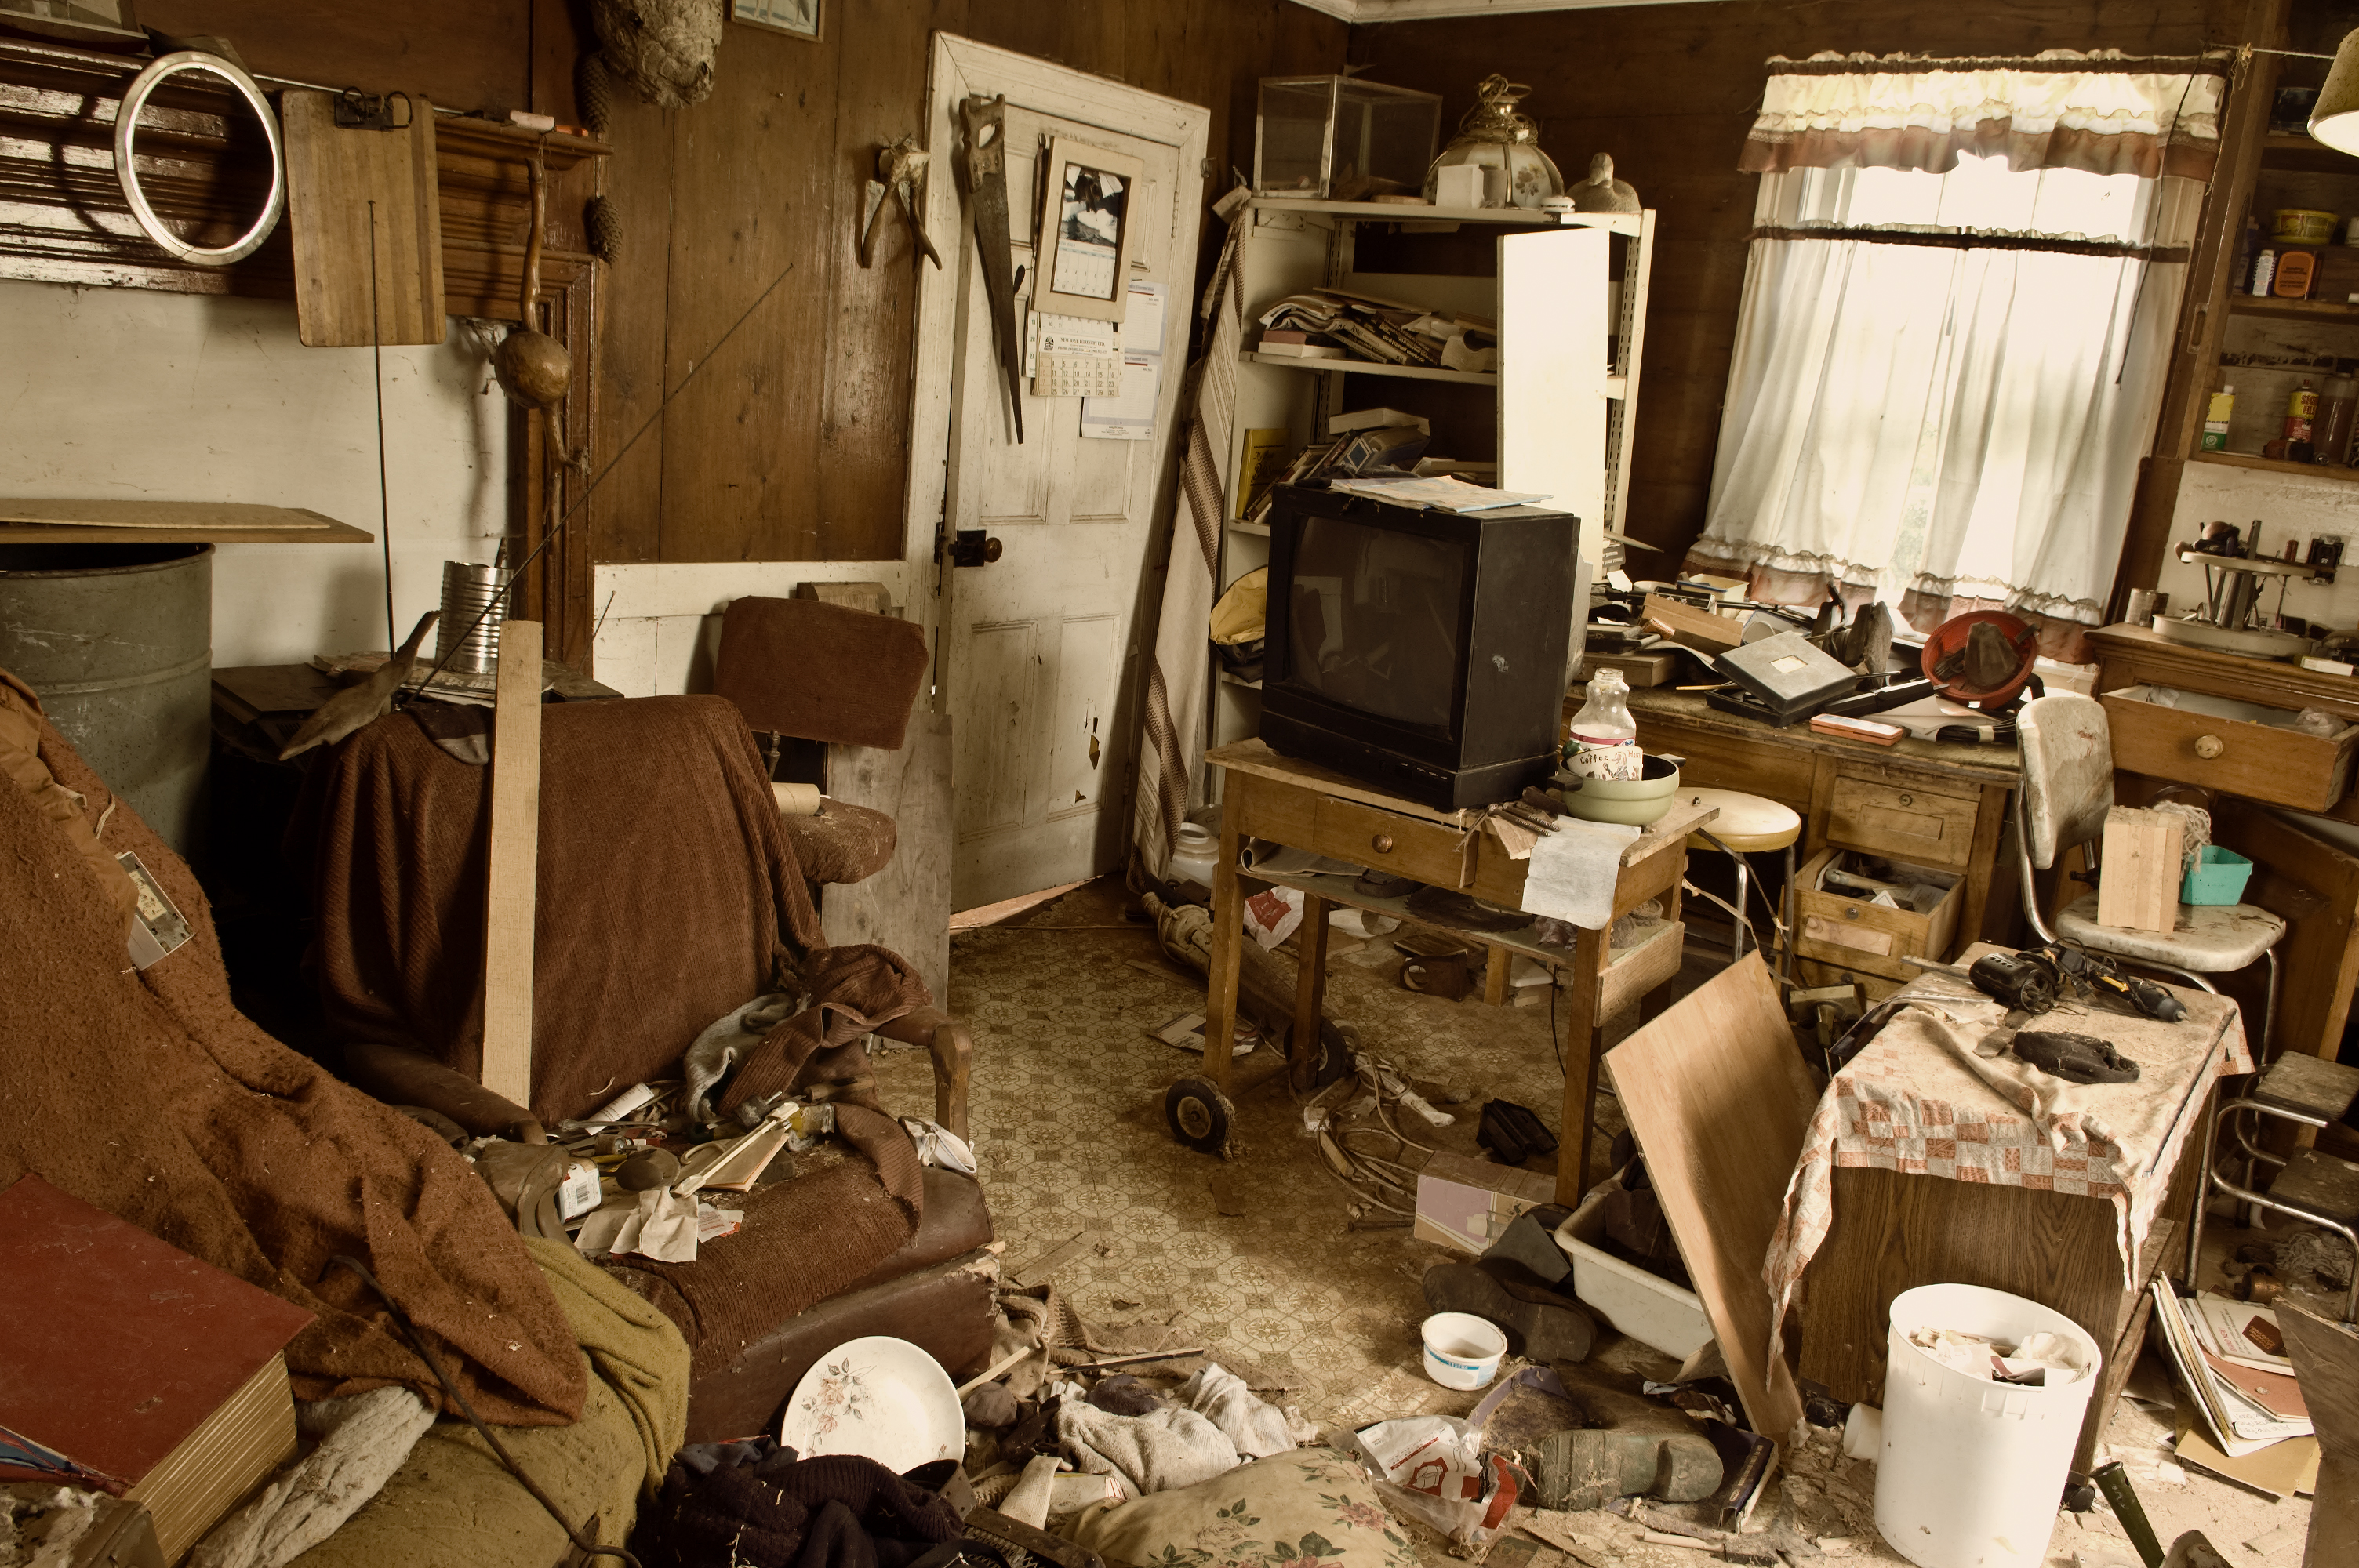 Millions of Americans have hoarding disorder.